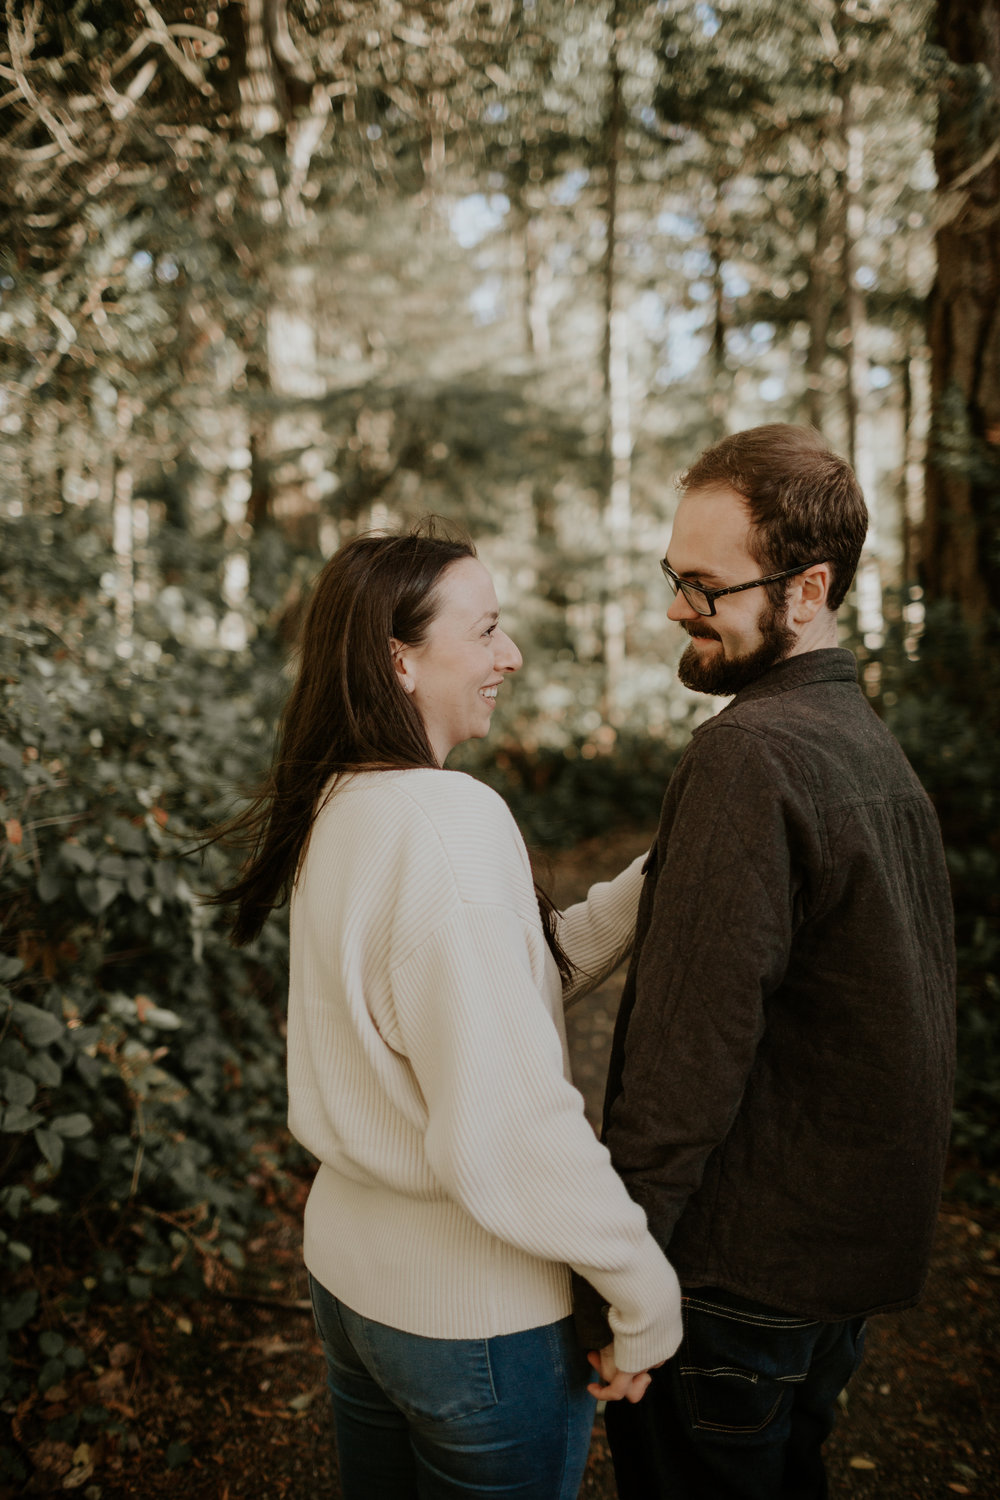 PNW-Olympic National Park-Salt Creek-engagement-Portrait-Port-Angeles-Washington-elopement-photographer-kayla-dawn-photography-kayladawnphoto-wedding-anniversary-photoshoot-olympic-peninsula-53.jpg